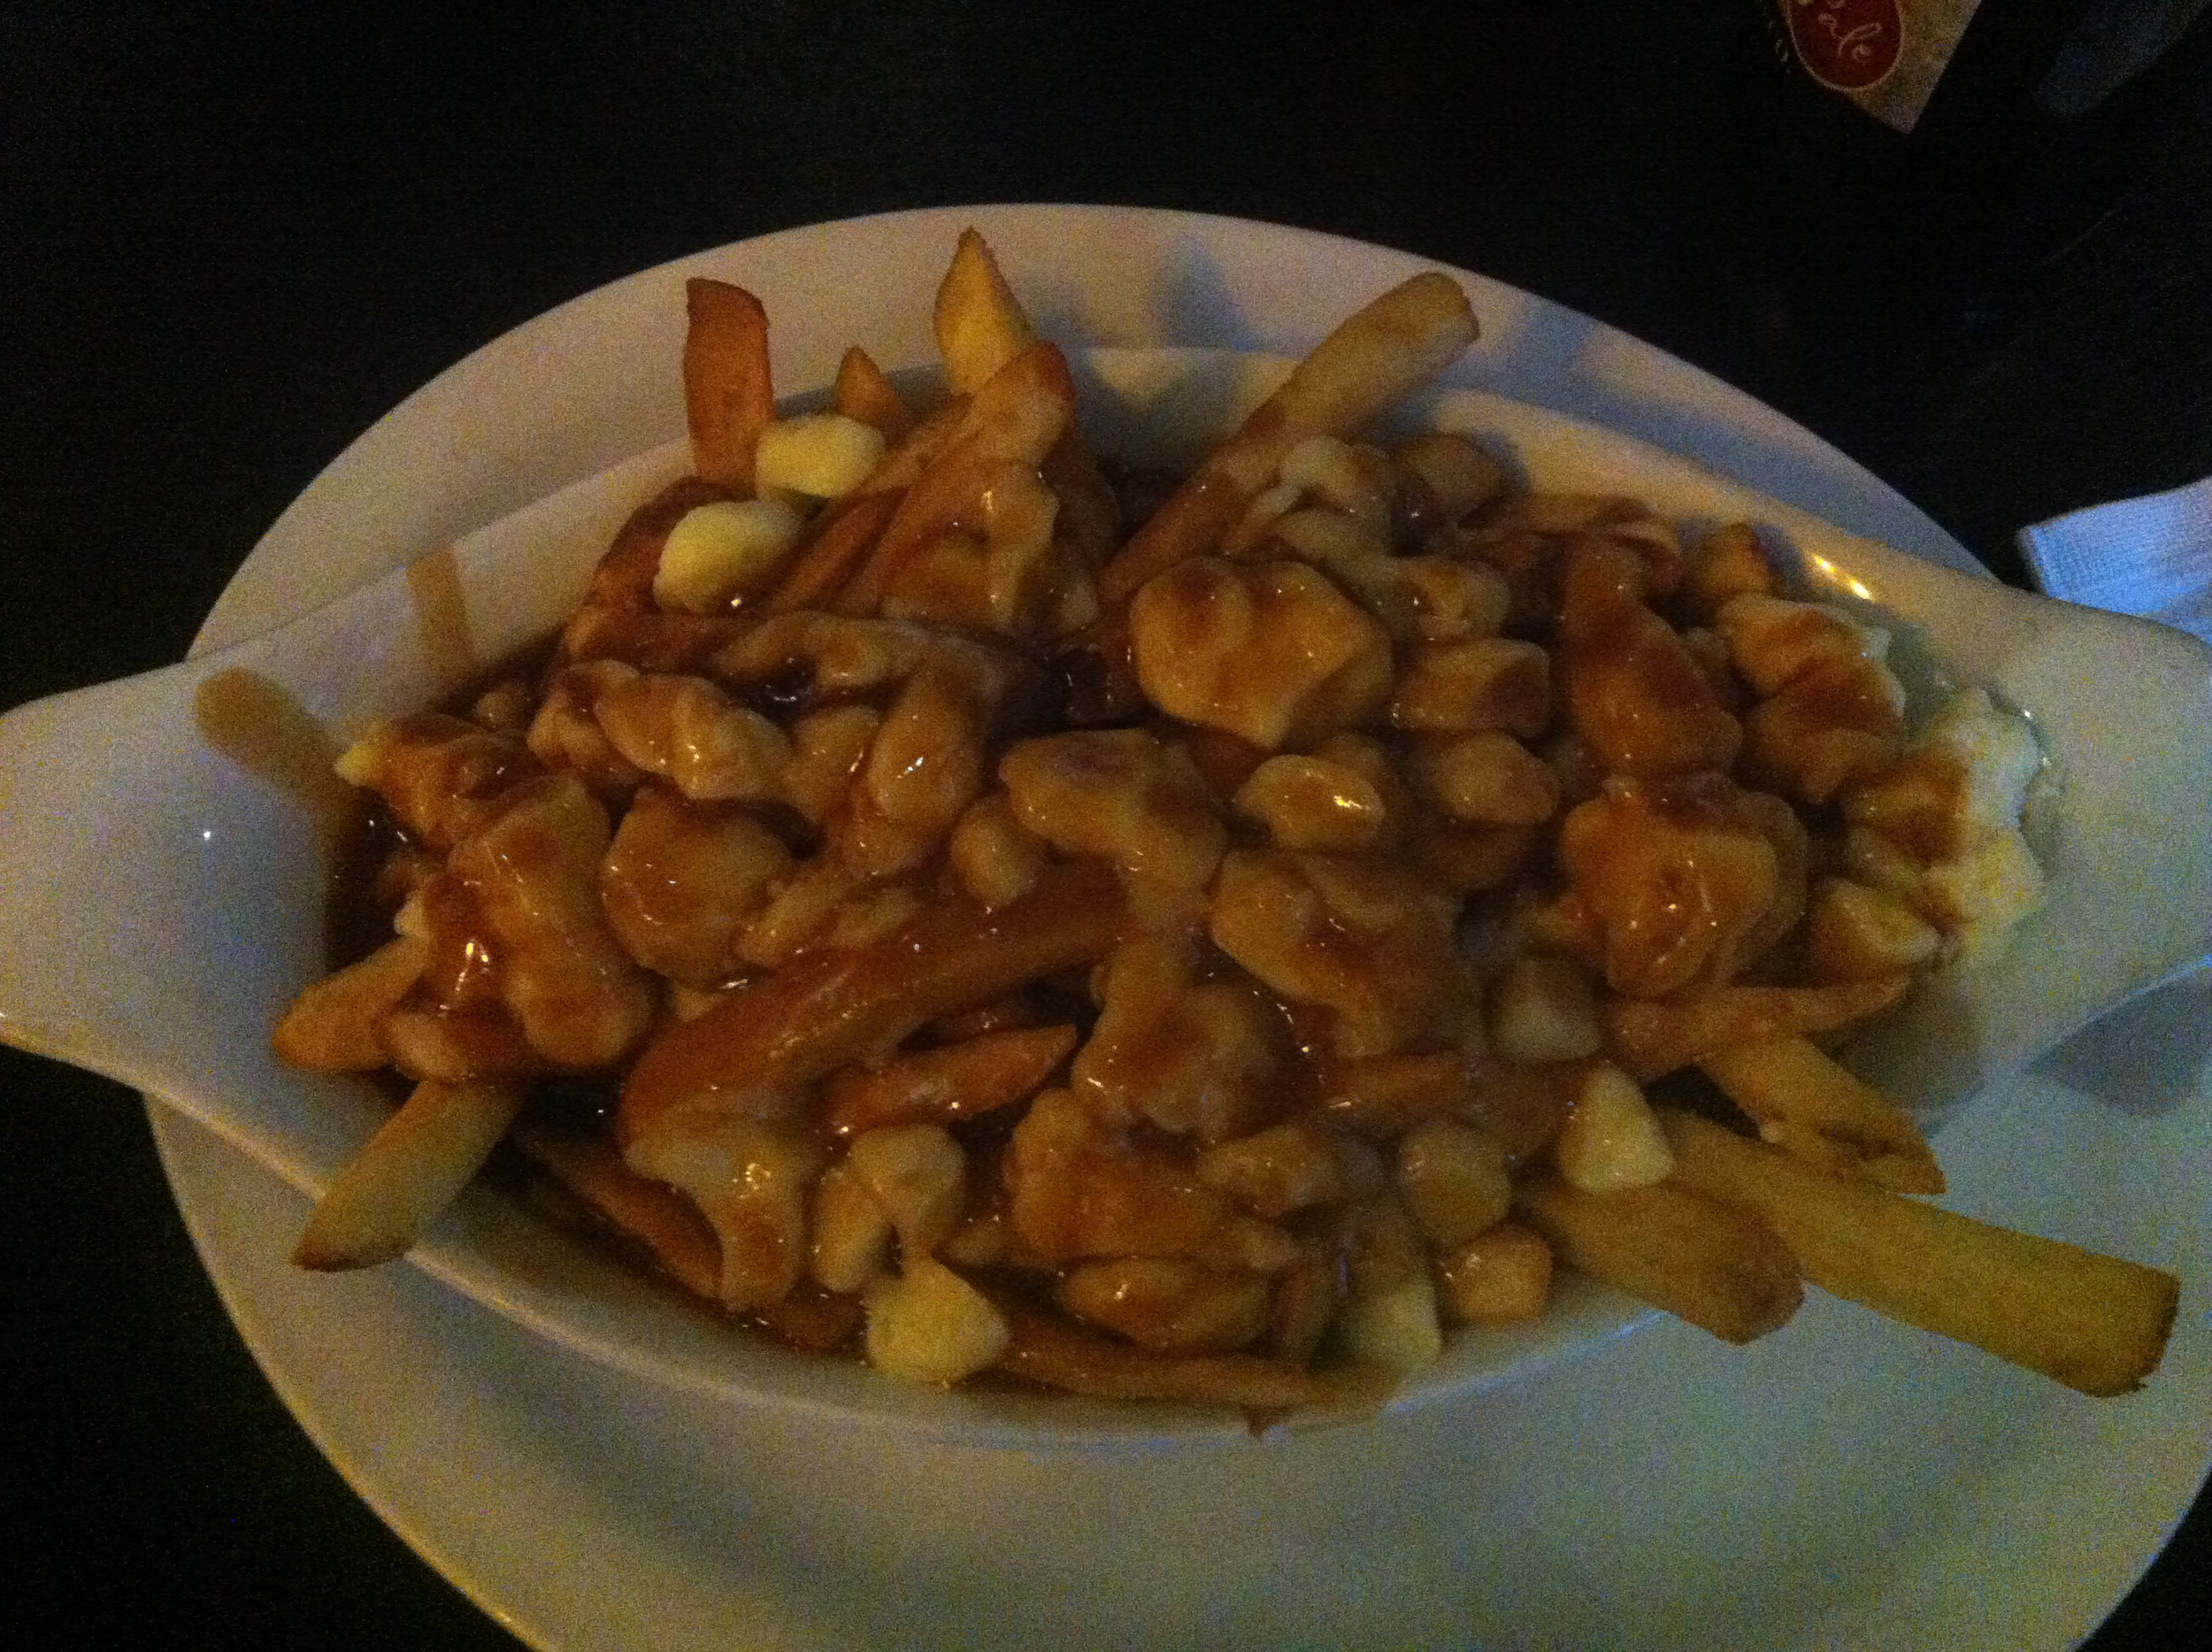 Poutine....french fries, gravy and cheese curds